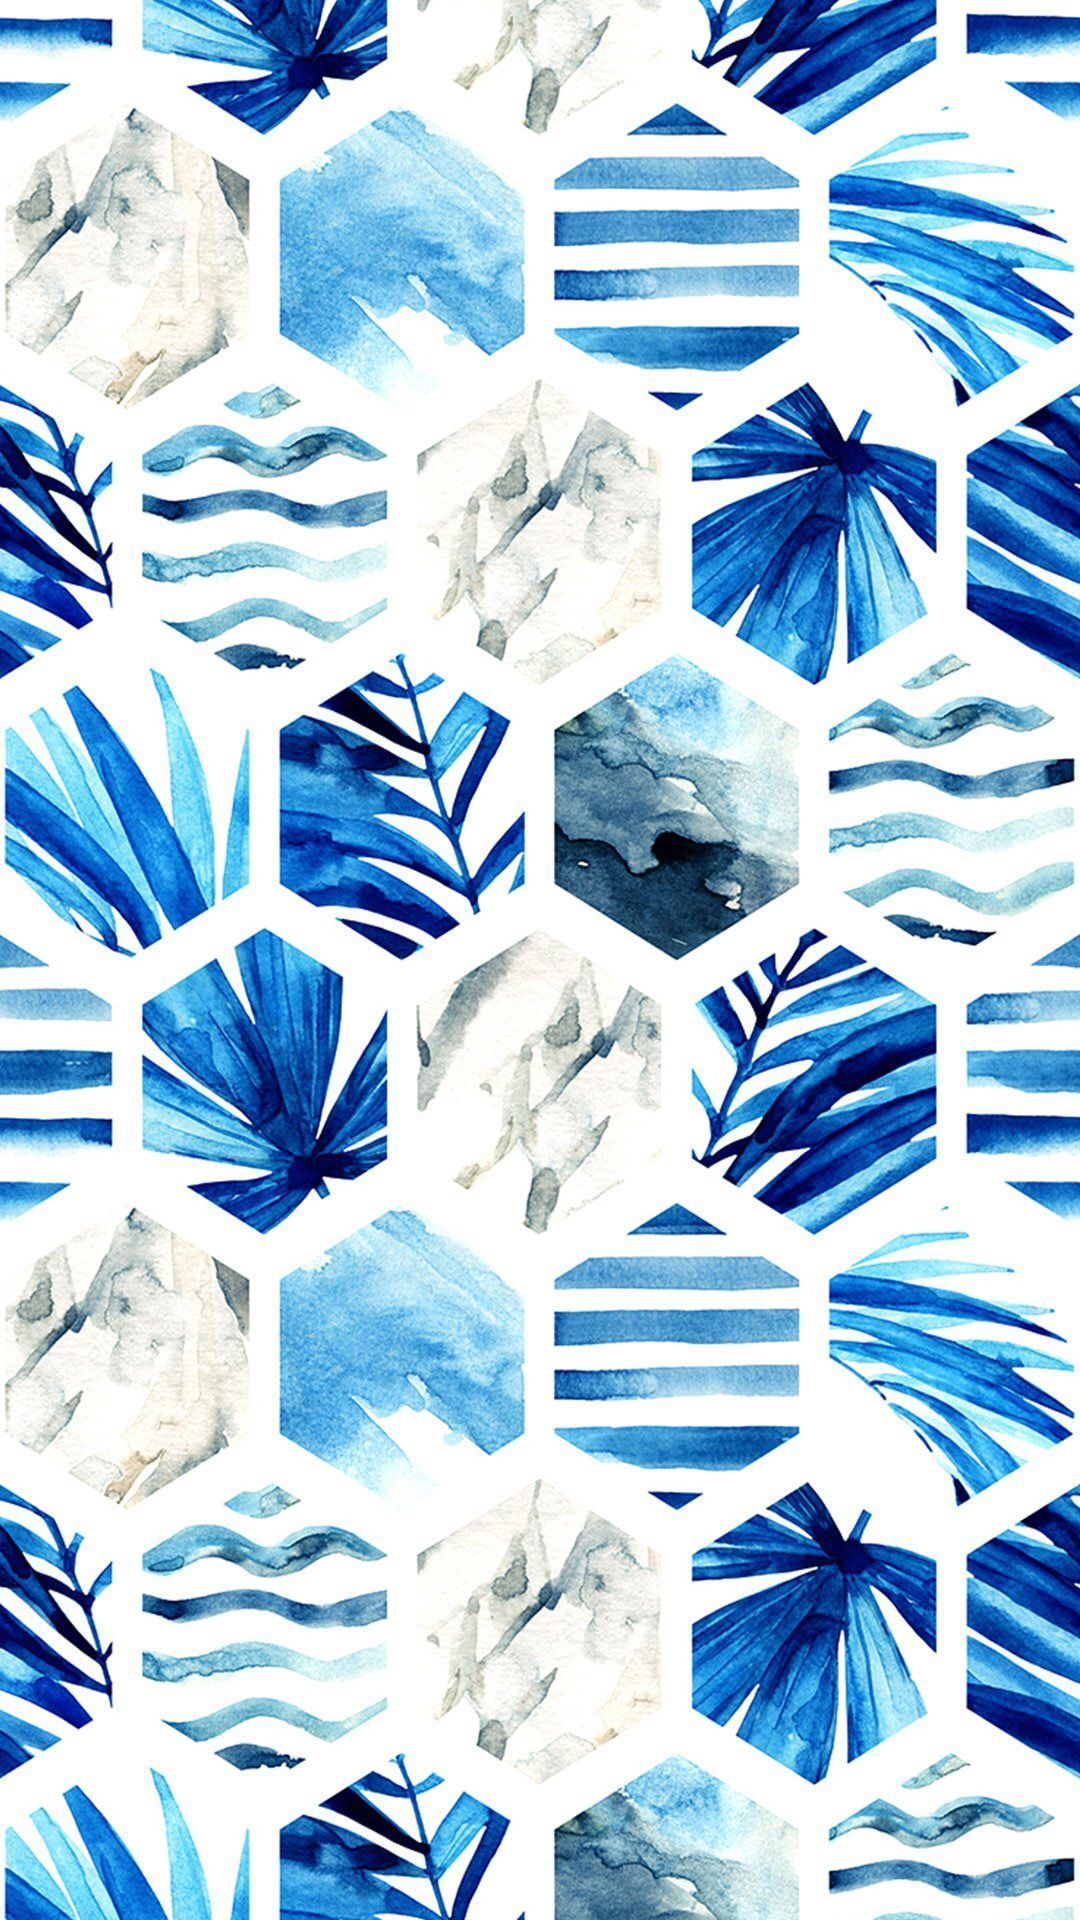 Watercolorstyle blue wallpaper Ipad wallpaper